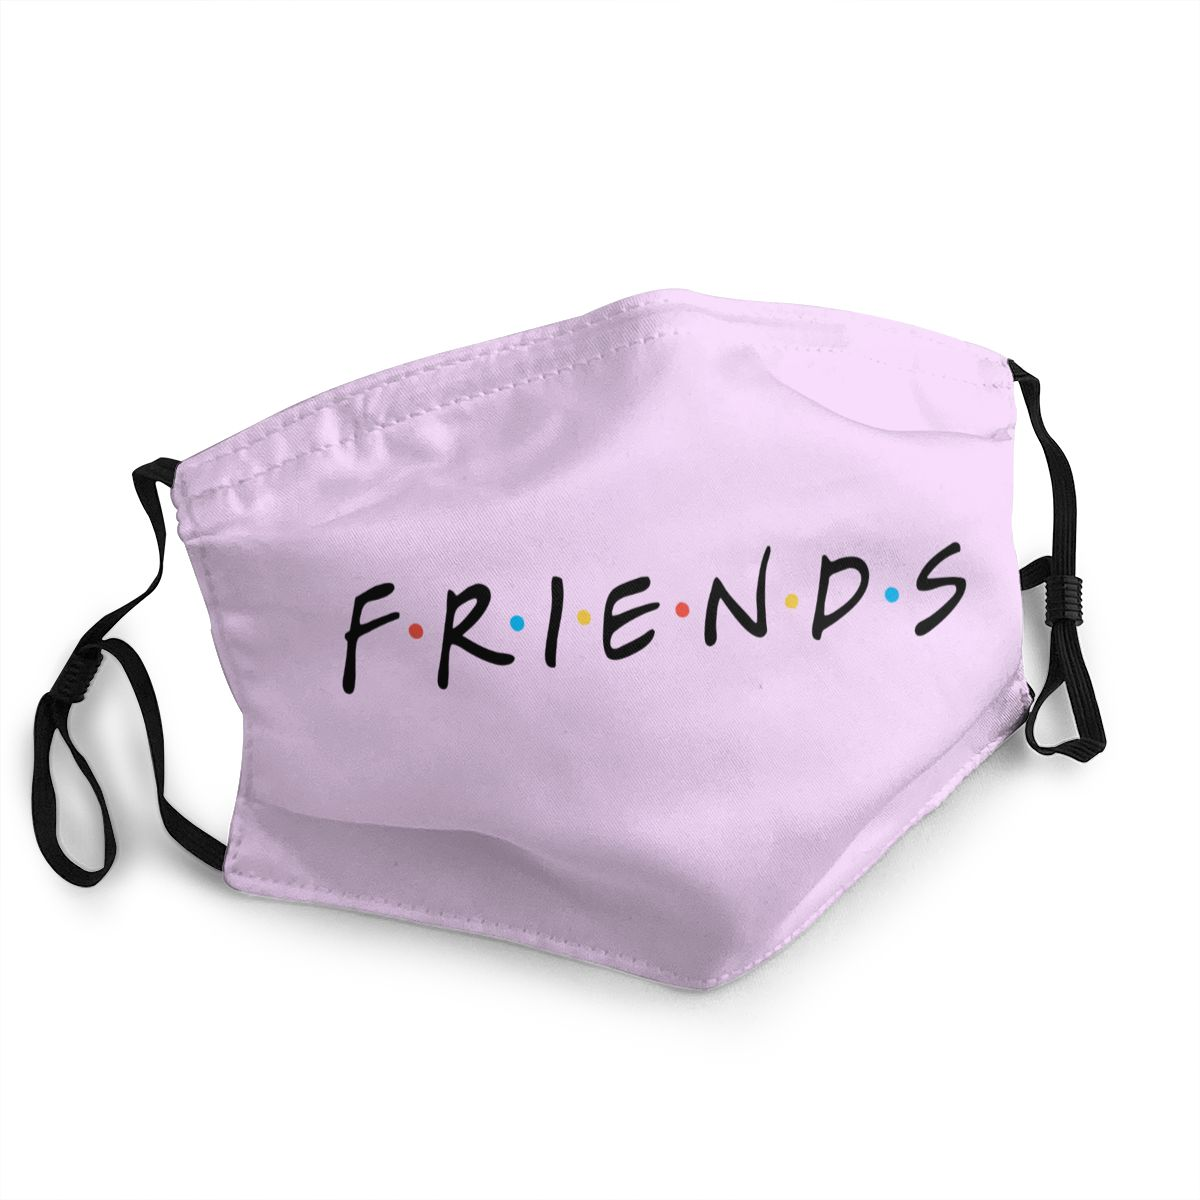 Friends Logo Men Women Non-Disposable Face Mask Anti Bacterial Dust Mask Protection Mask Respirator Mouth Muffle